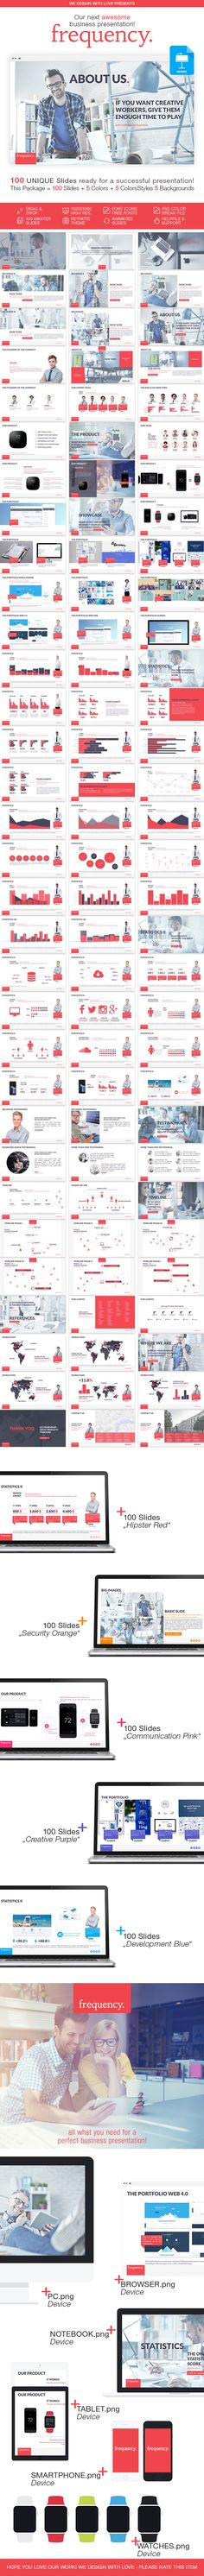 frequency. keynote presentation template 100 slides + 5 colors #keanote #template #business